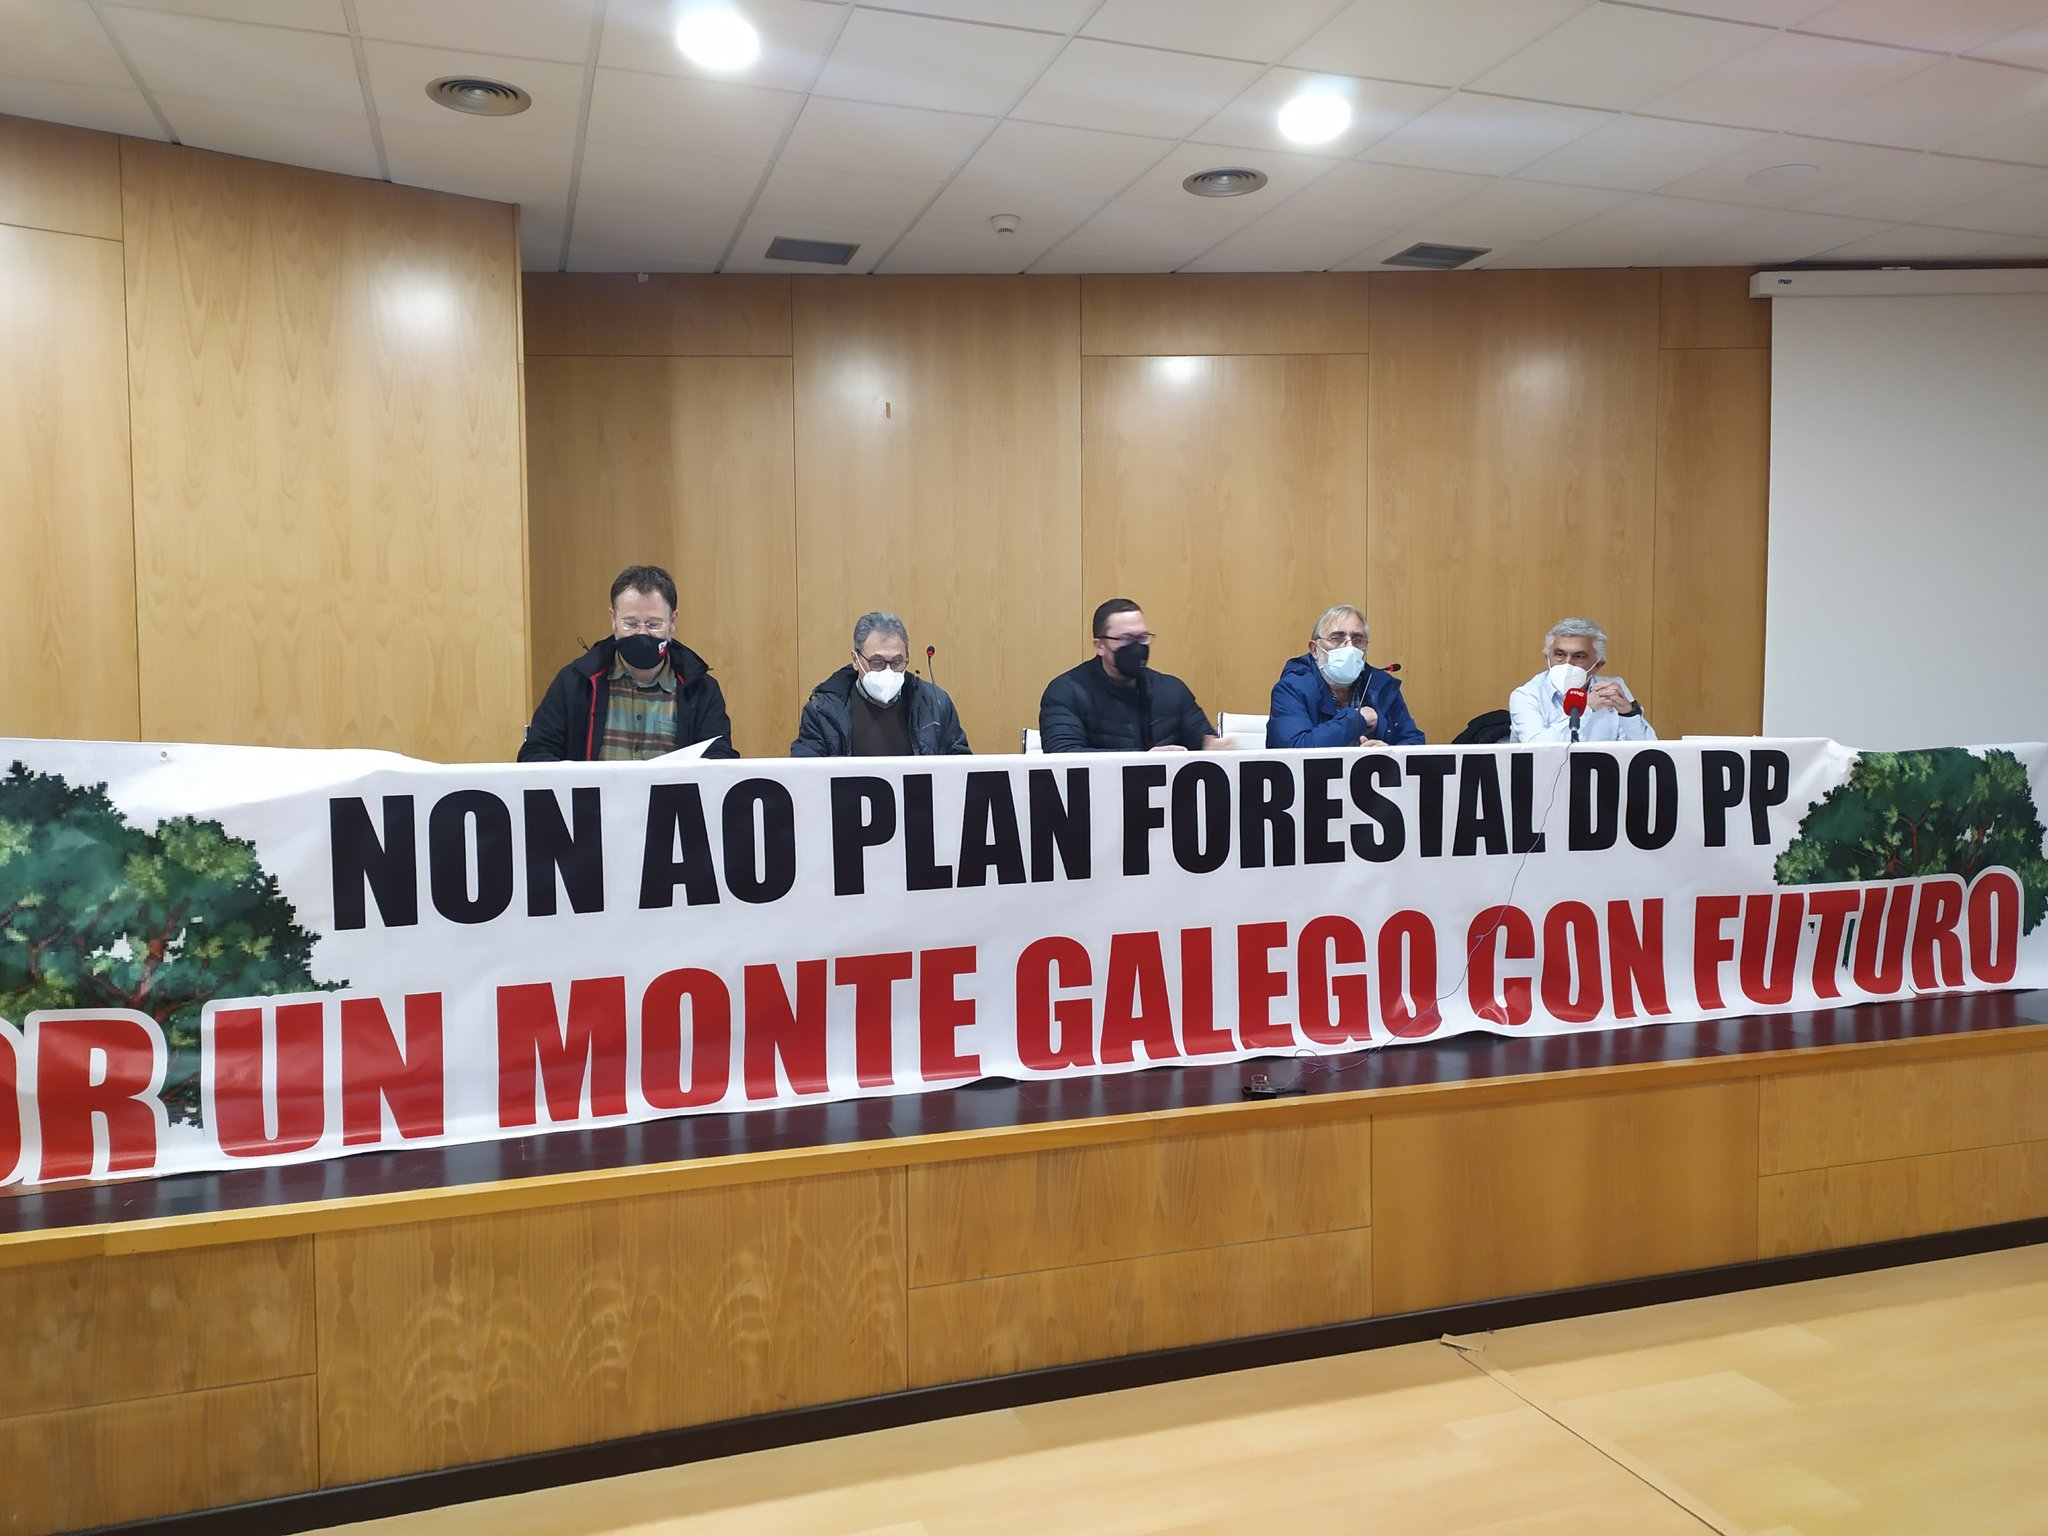 Fronte contra o Plan Forestal